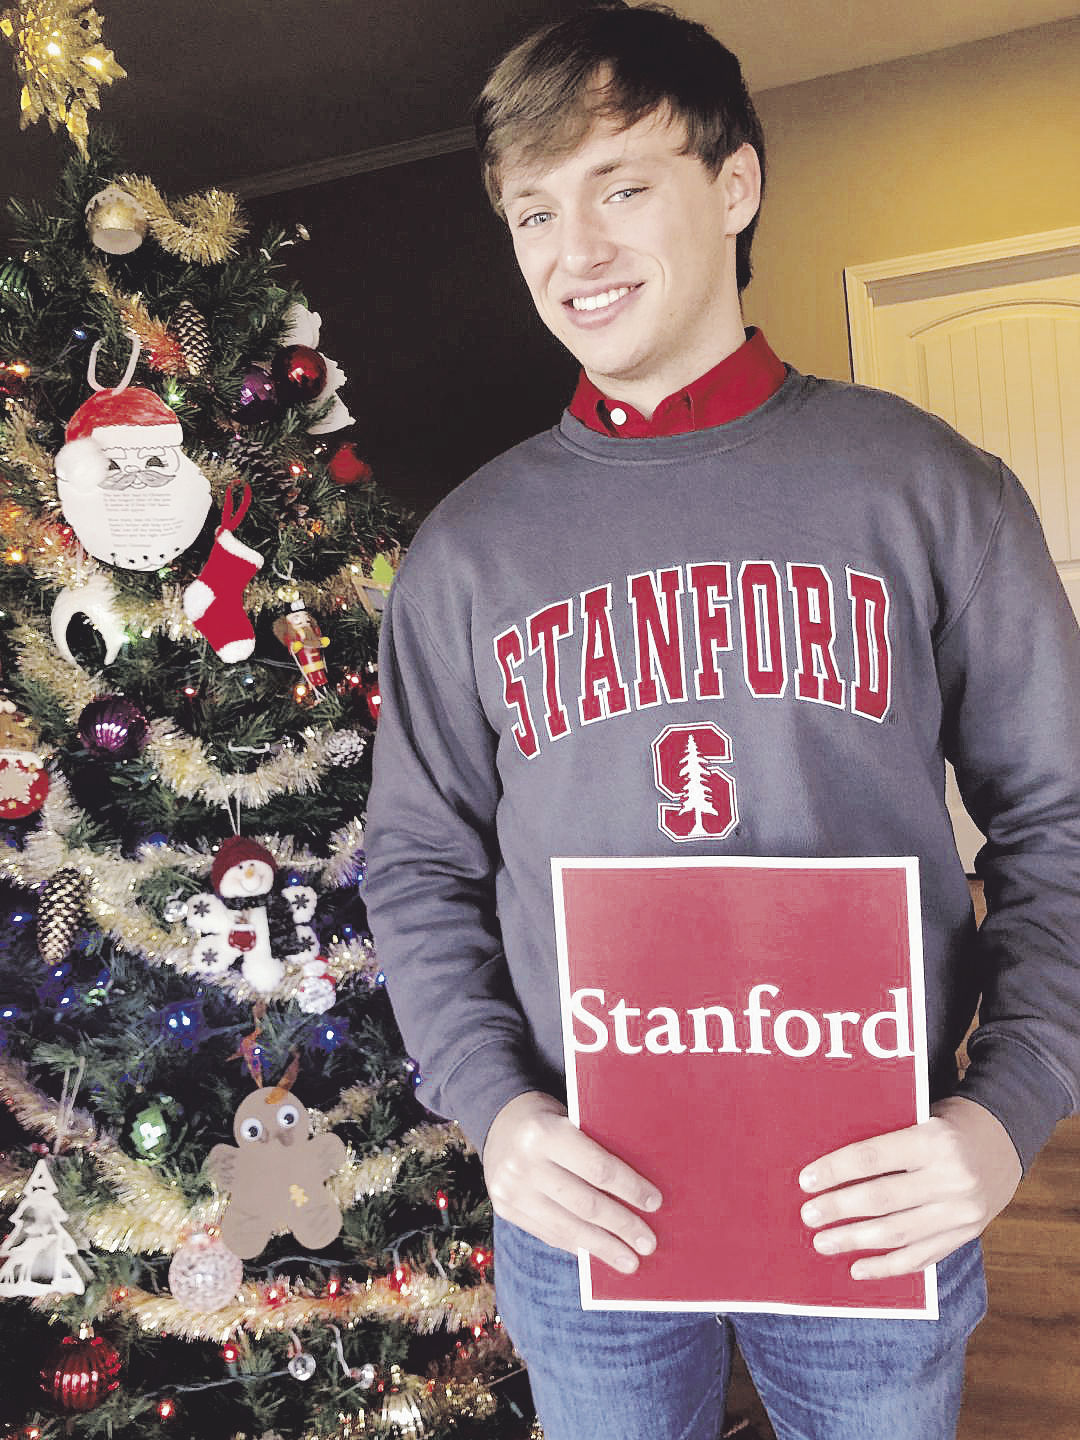 Senior Spotlight: Tubist leaves Smithville for Stanford